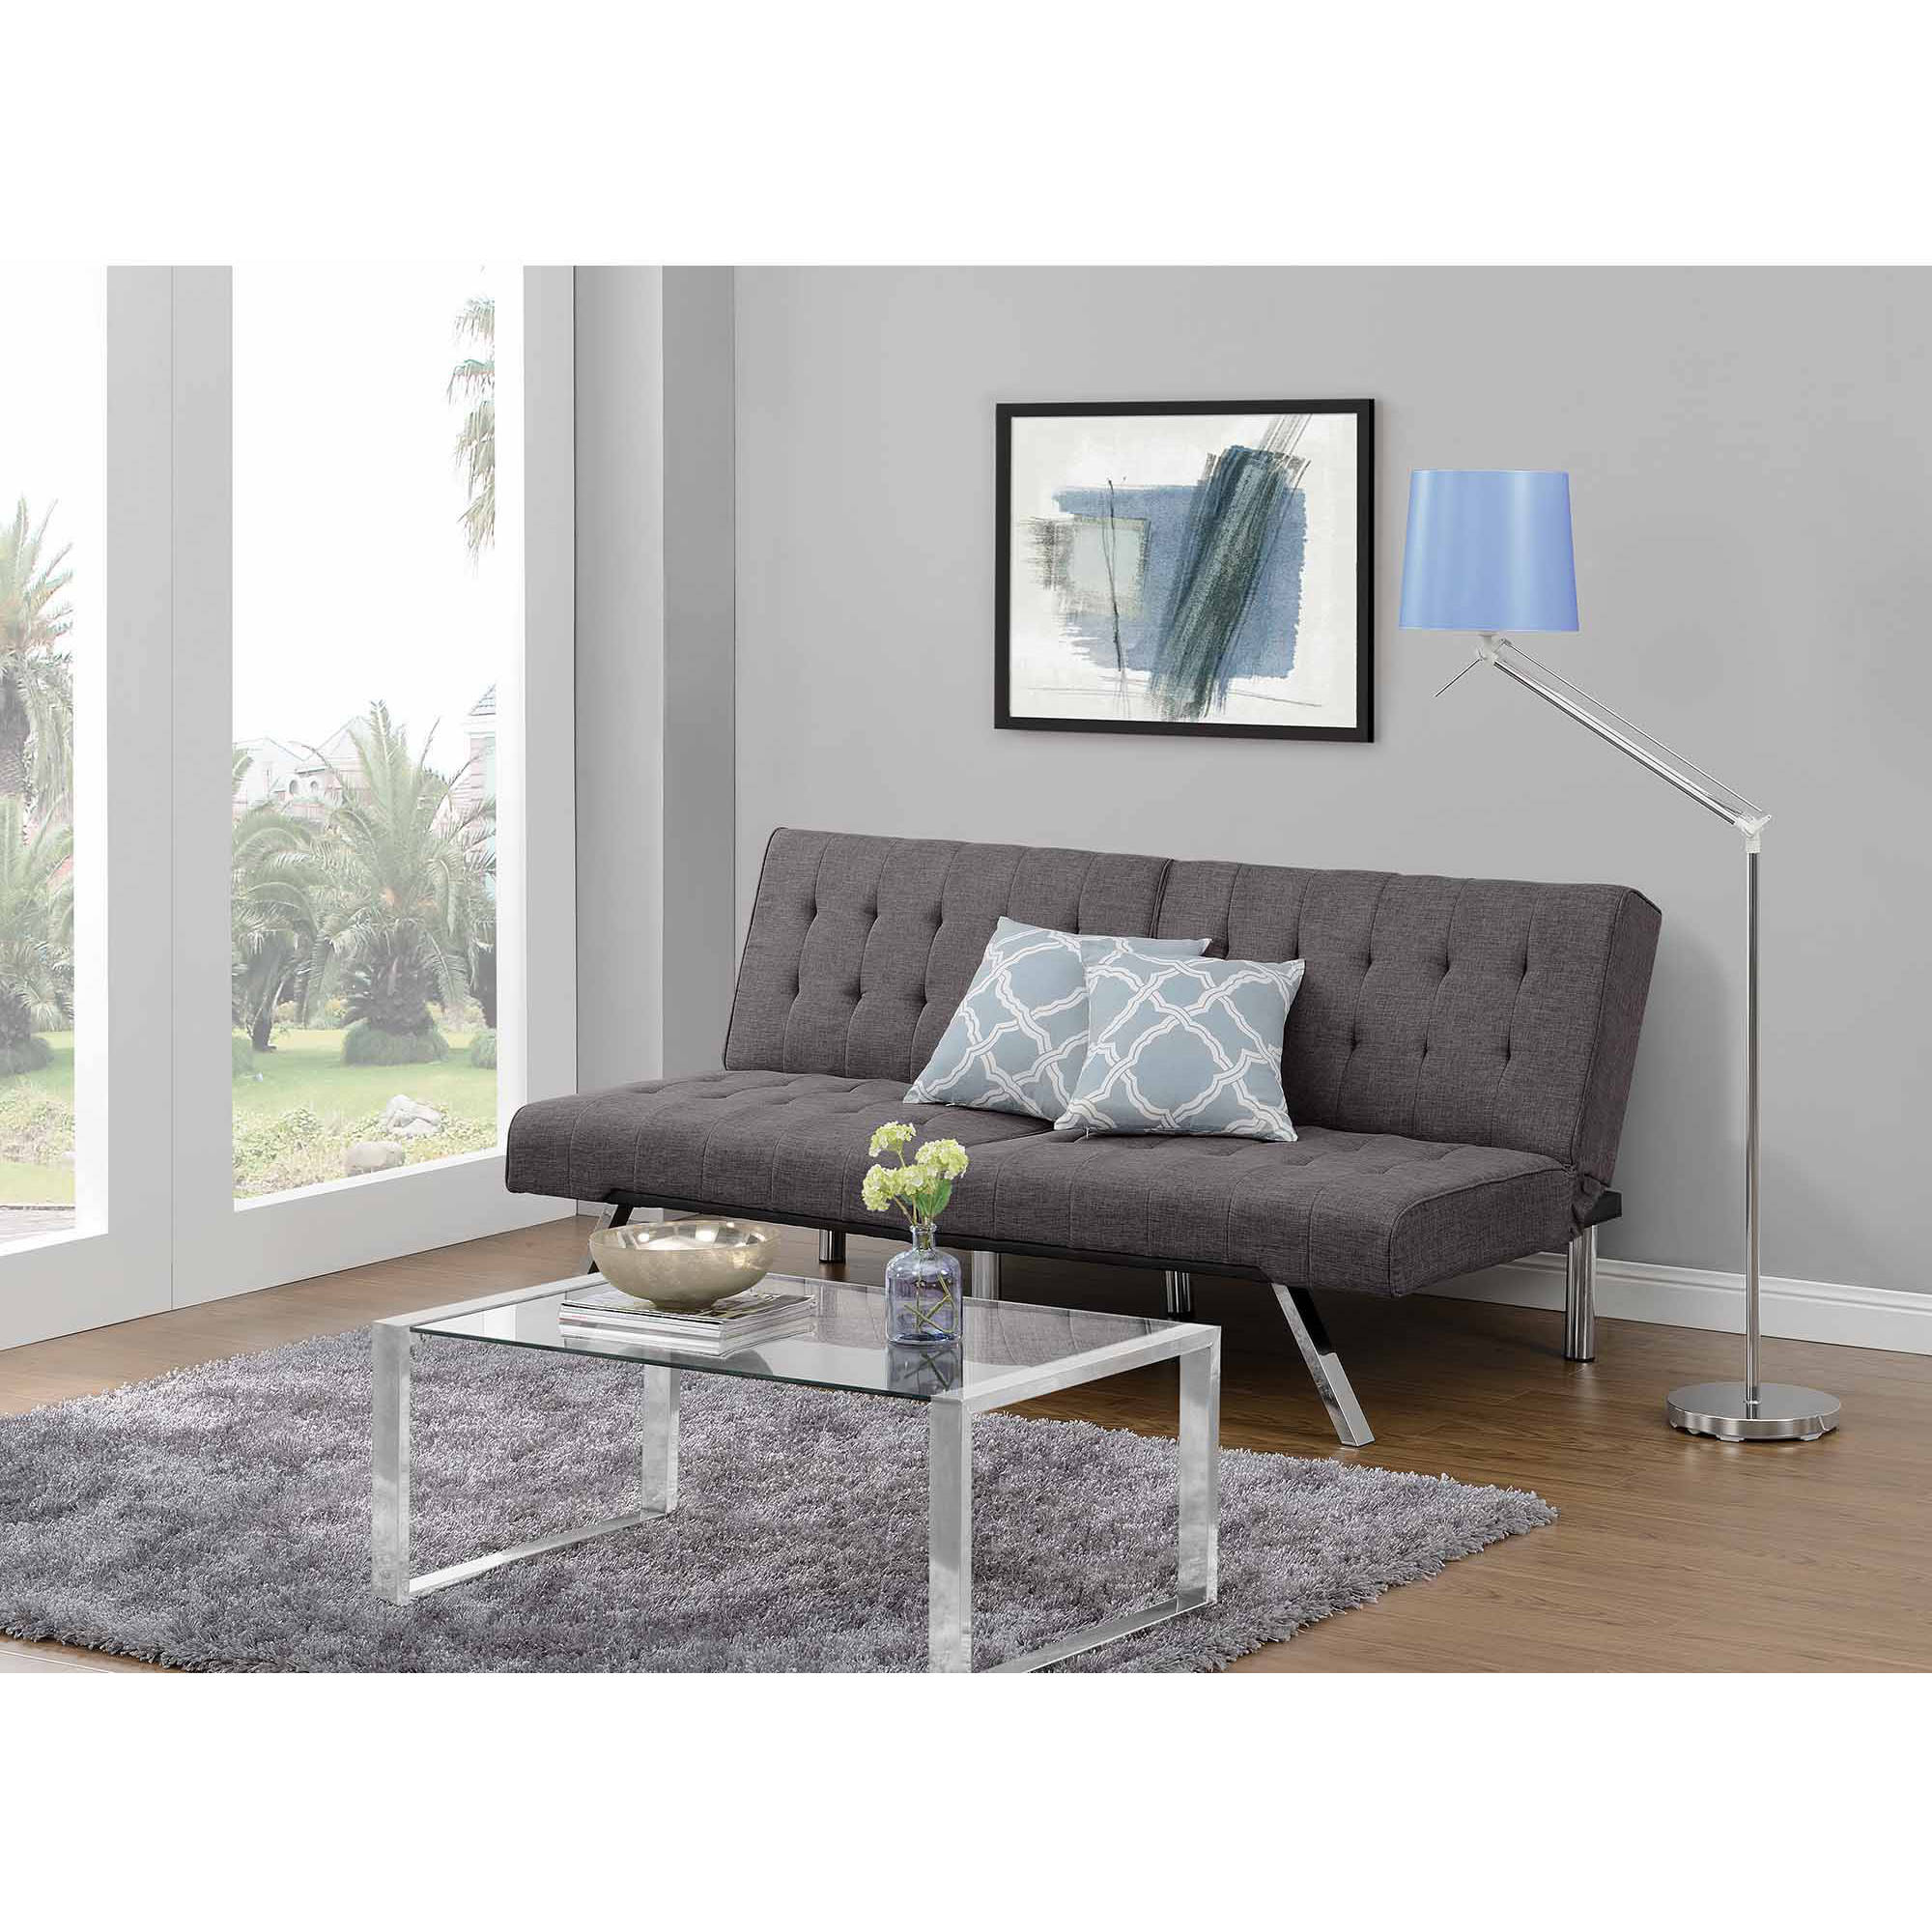 dhp emily convertible futon multiple colors dhp emily convertible futon multiple colors   walmart    rh   walmart